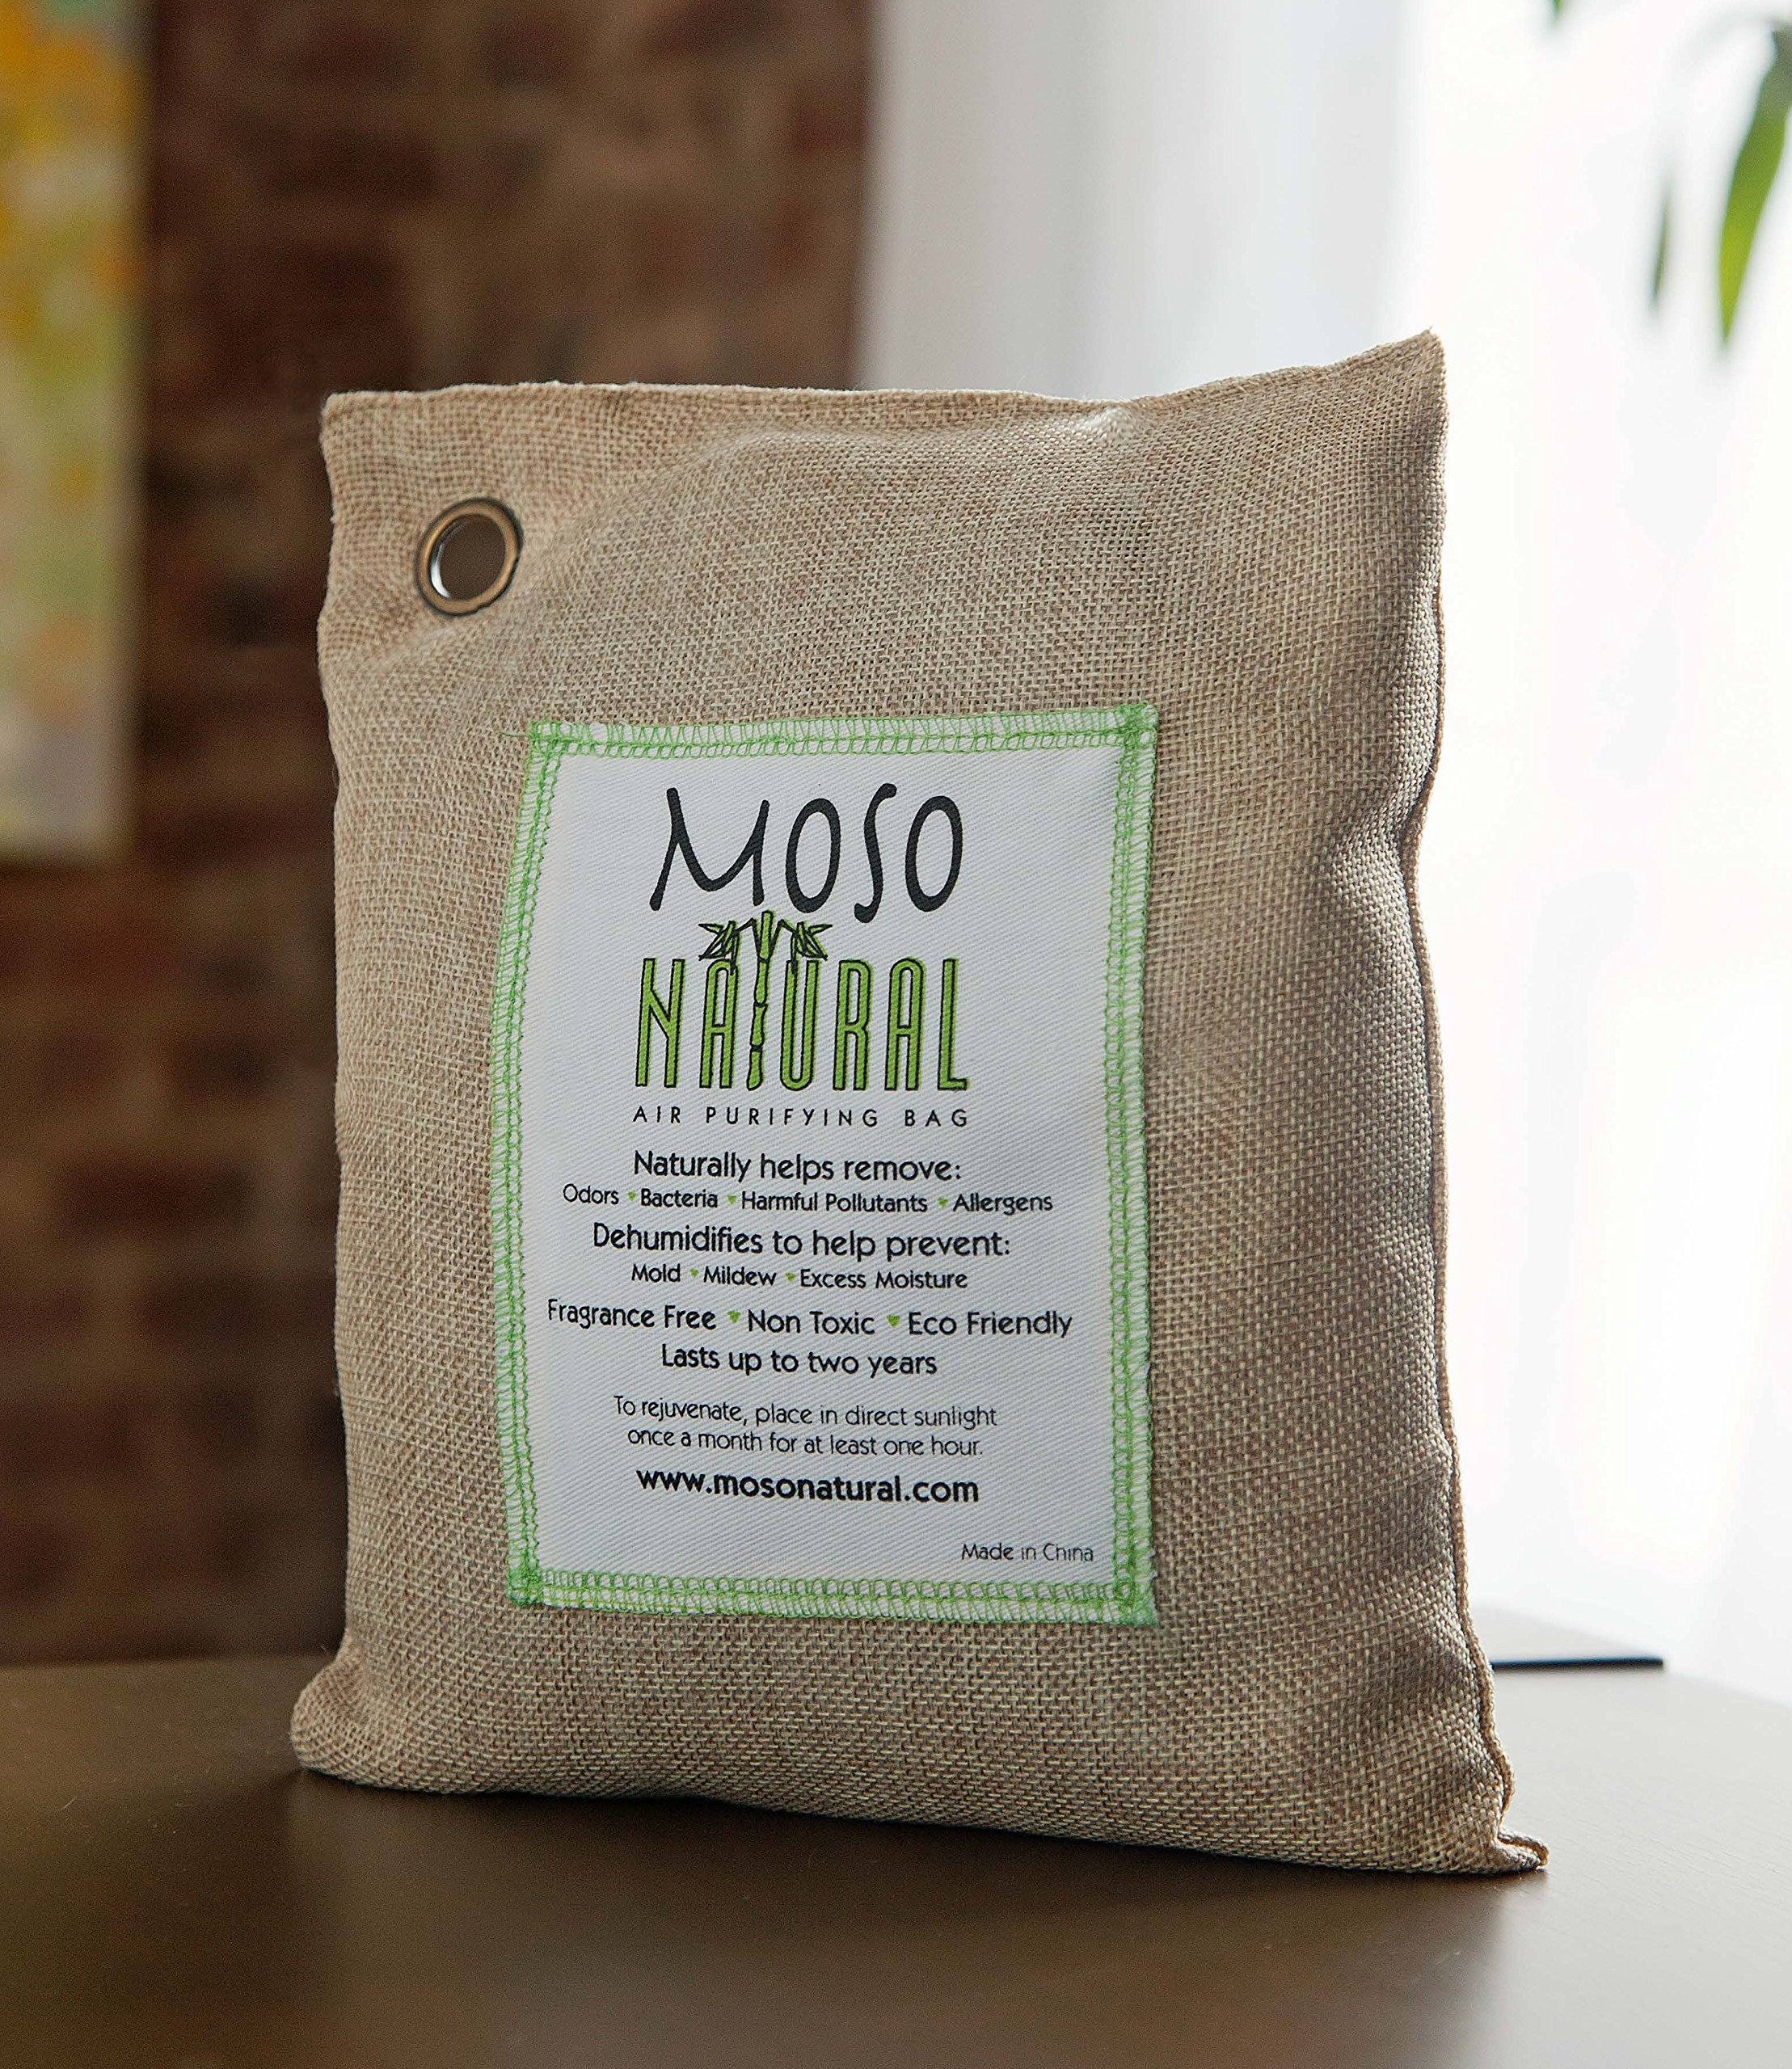 Moso Natural 200g and 500g Air Purifying Bag Deodorizers. Odor Eliminator for Cars, Closets, Bathrooms and Pet Areas. Absorbs and Eliminates Odors Natural Color